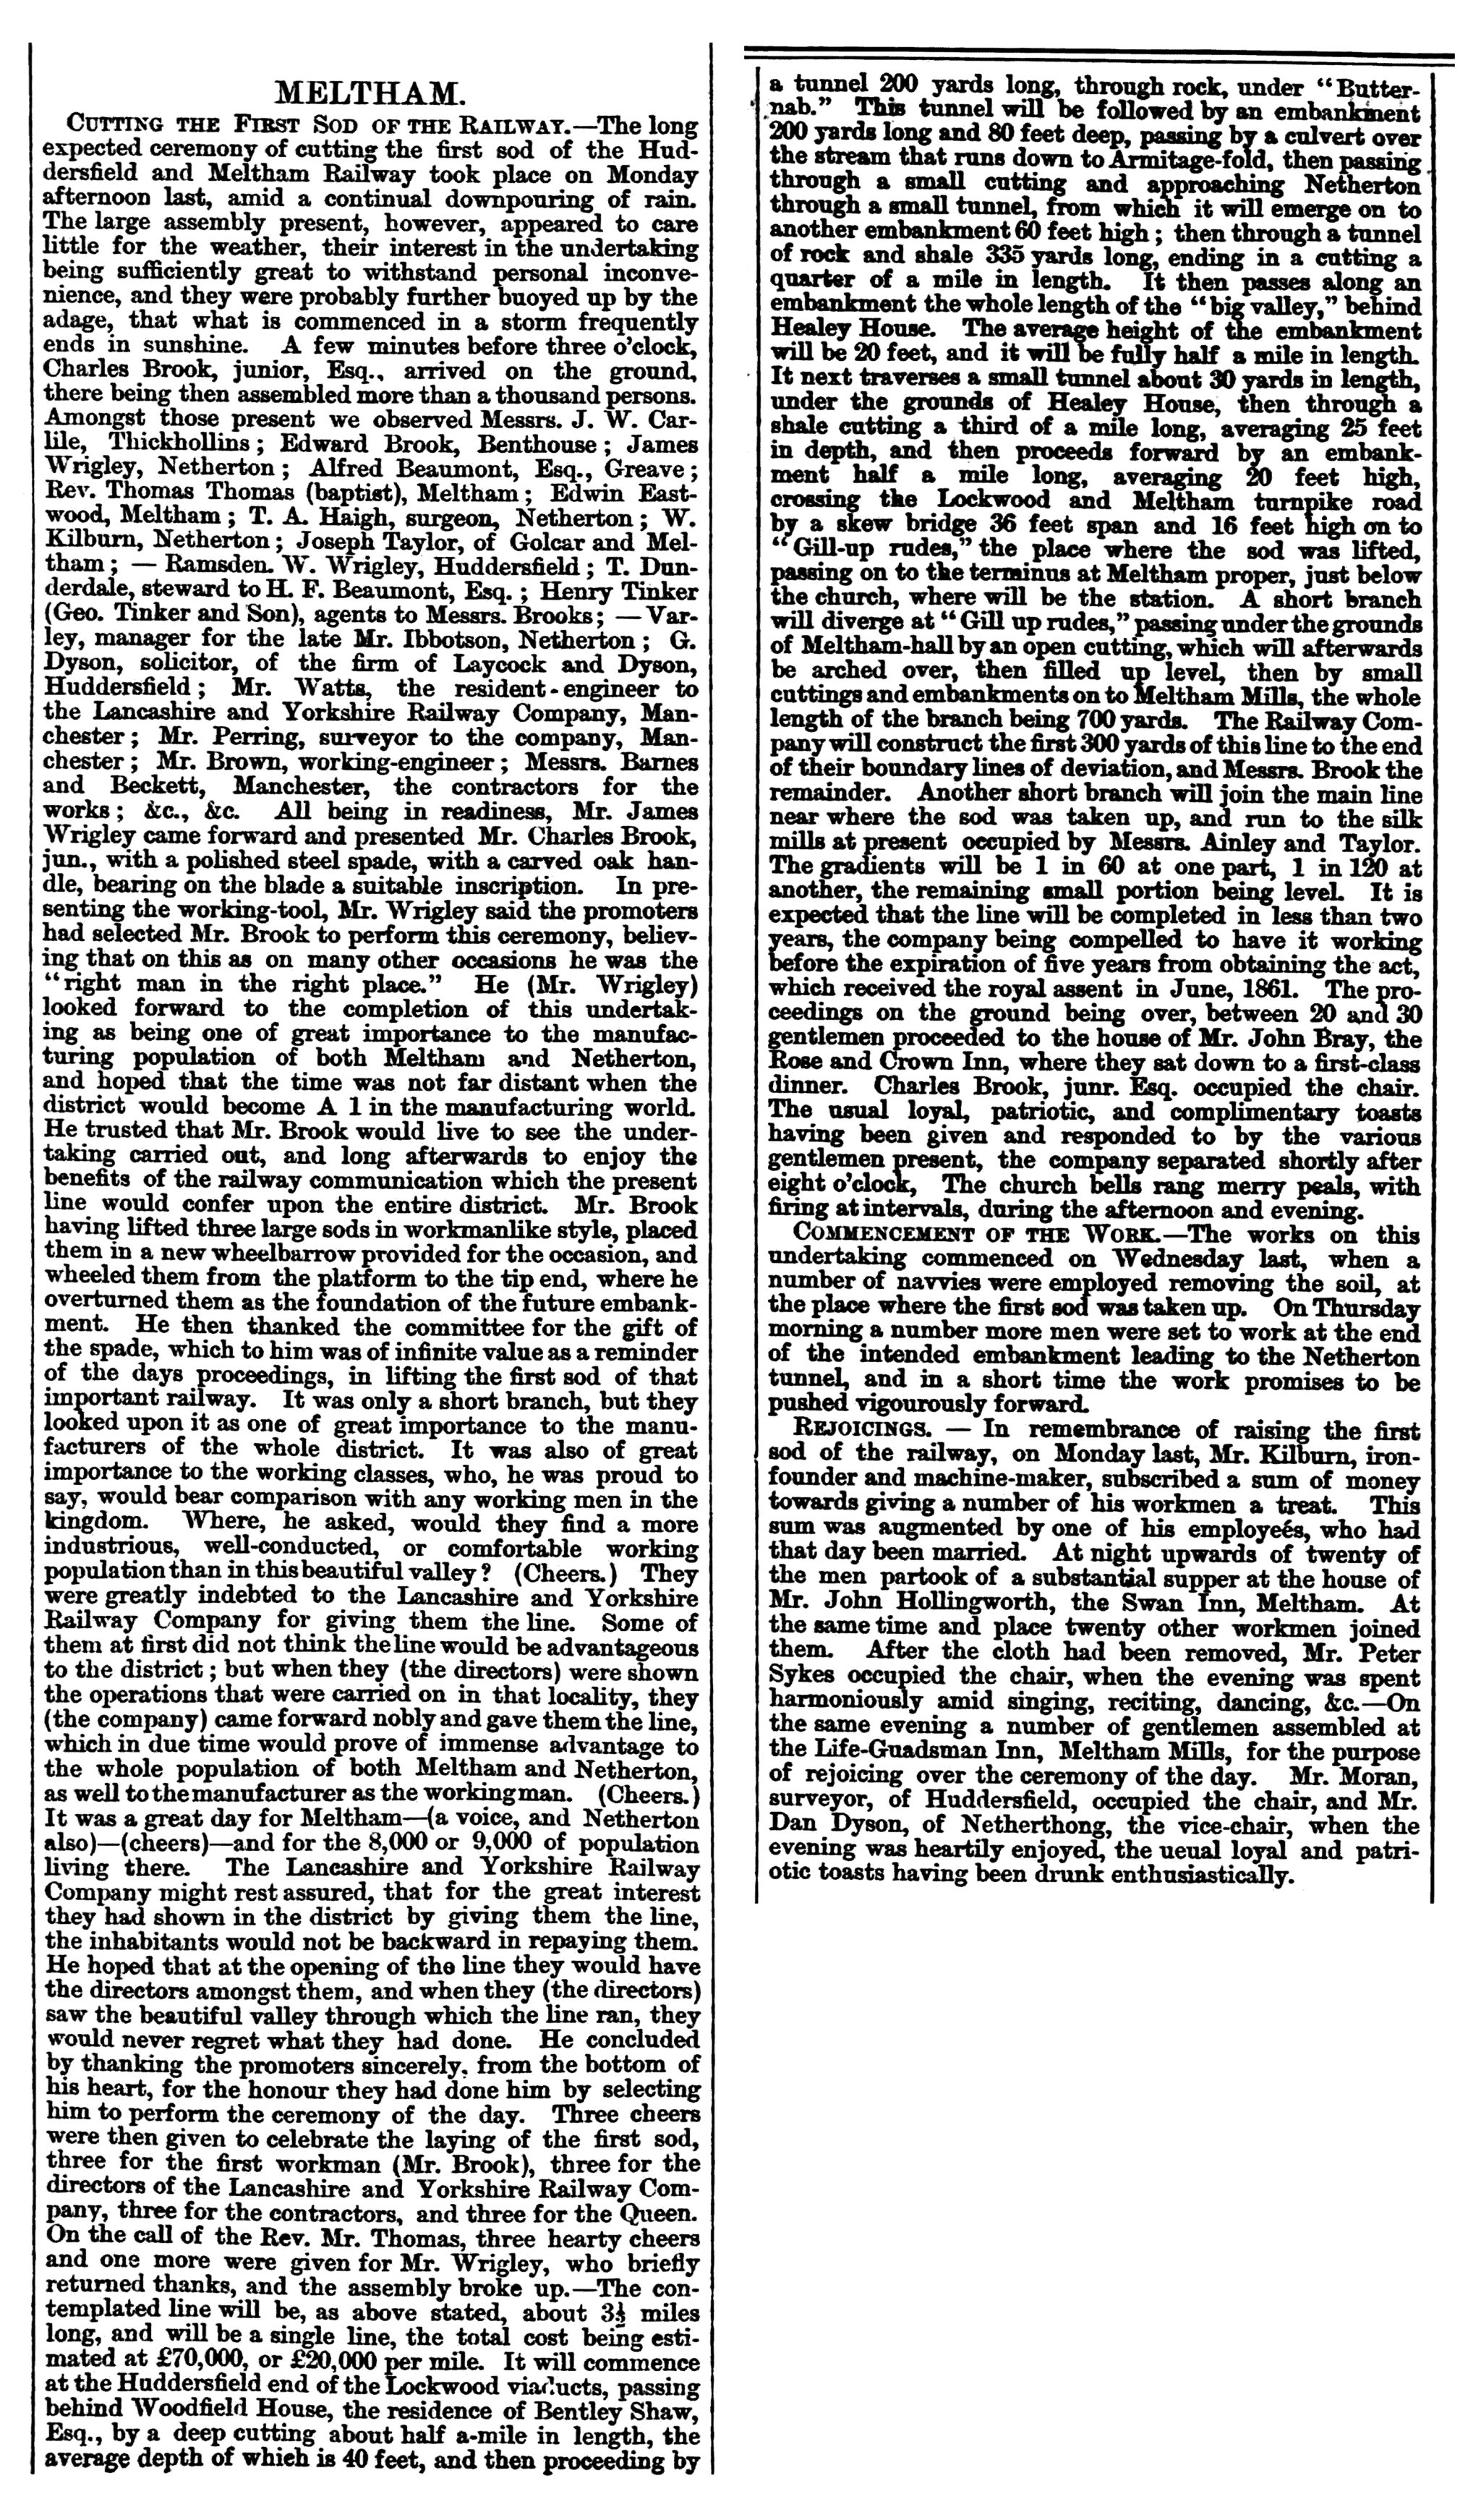 1864.04.09 Meltham, Cutting the First Sod of the Railway - Huddersfield Chronicle